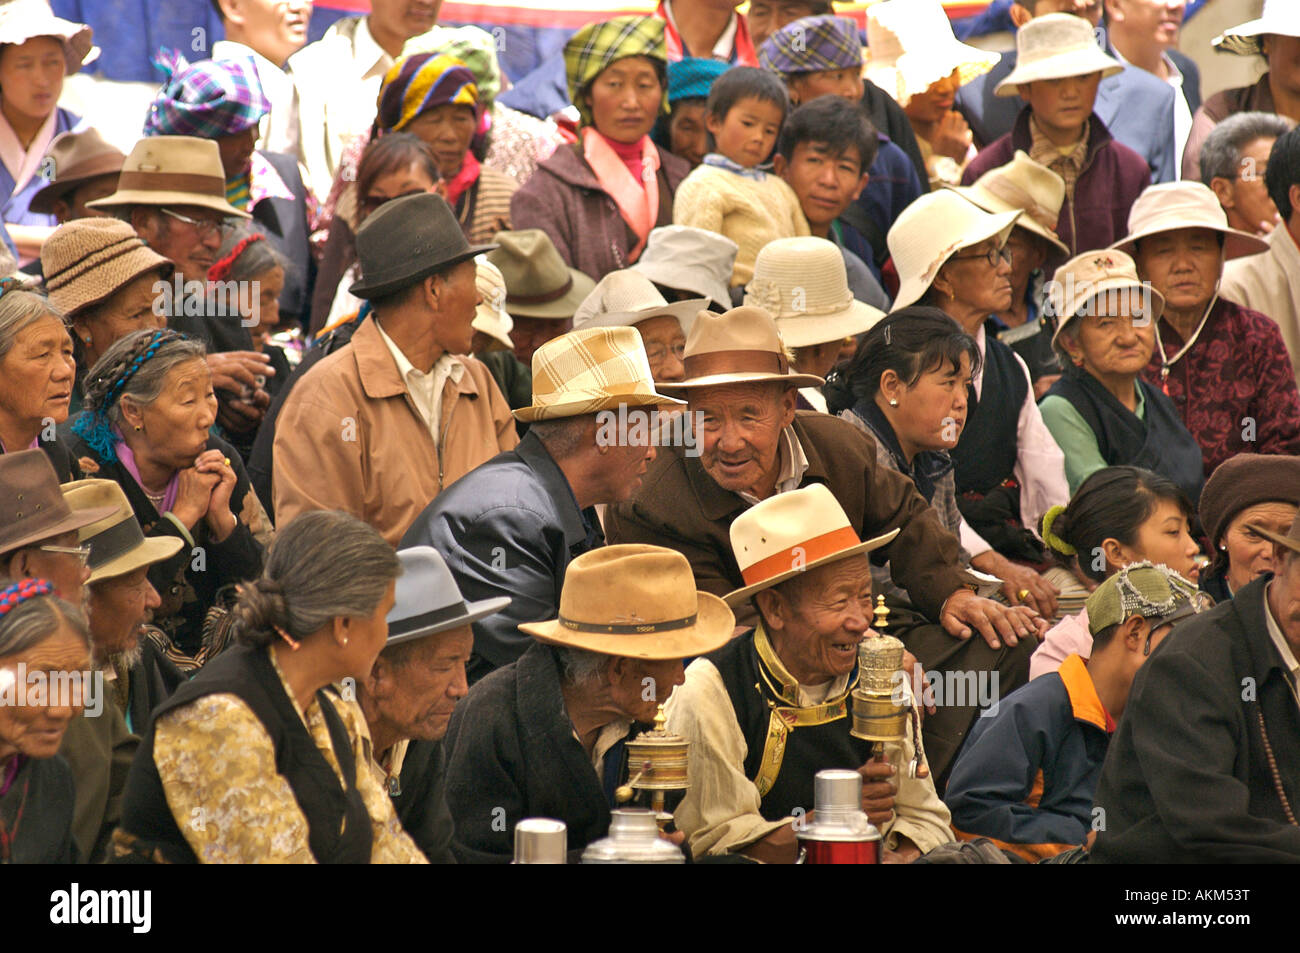 Crowd of Tibetans in a festive mood Shoton festival the Summer Palace Tibet Stock Photo